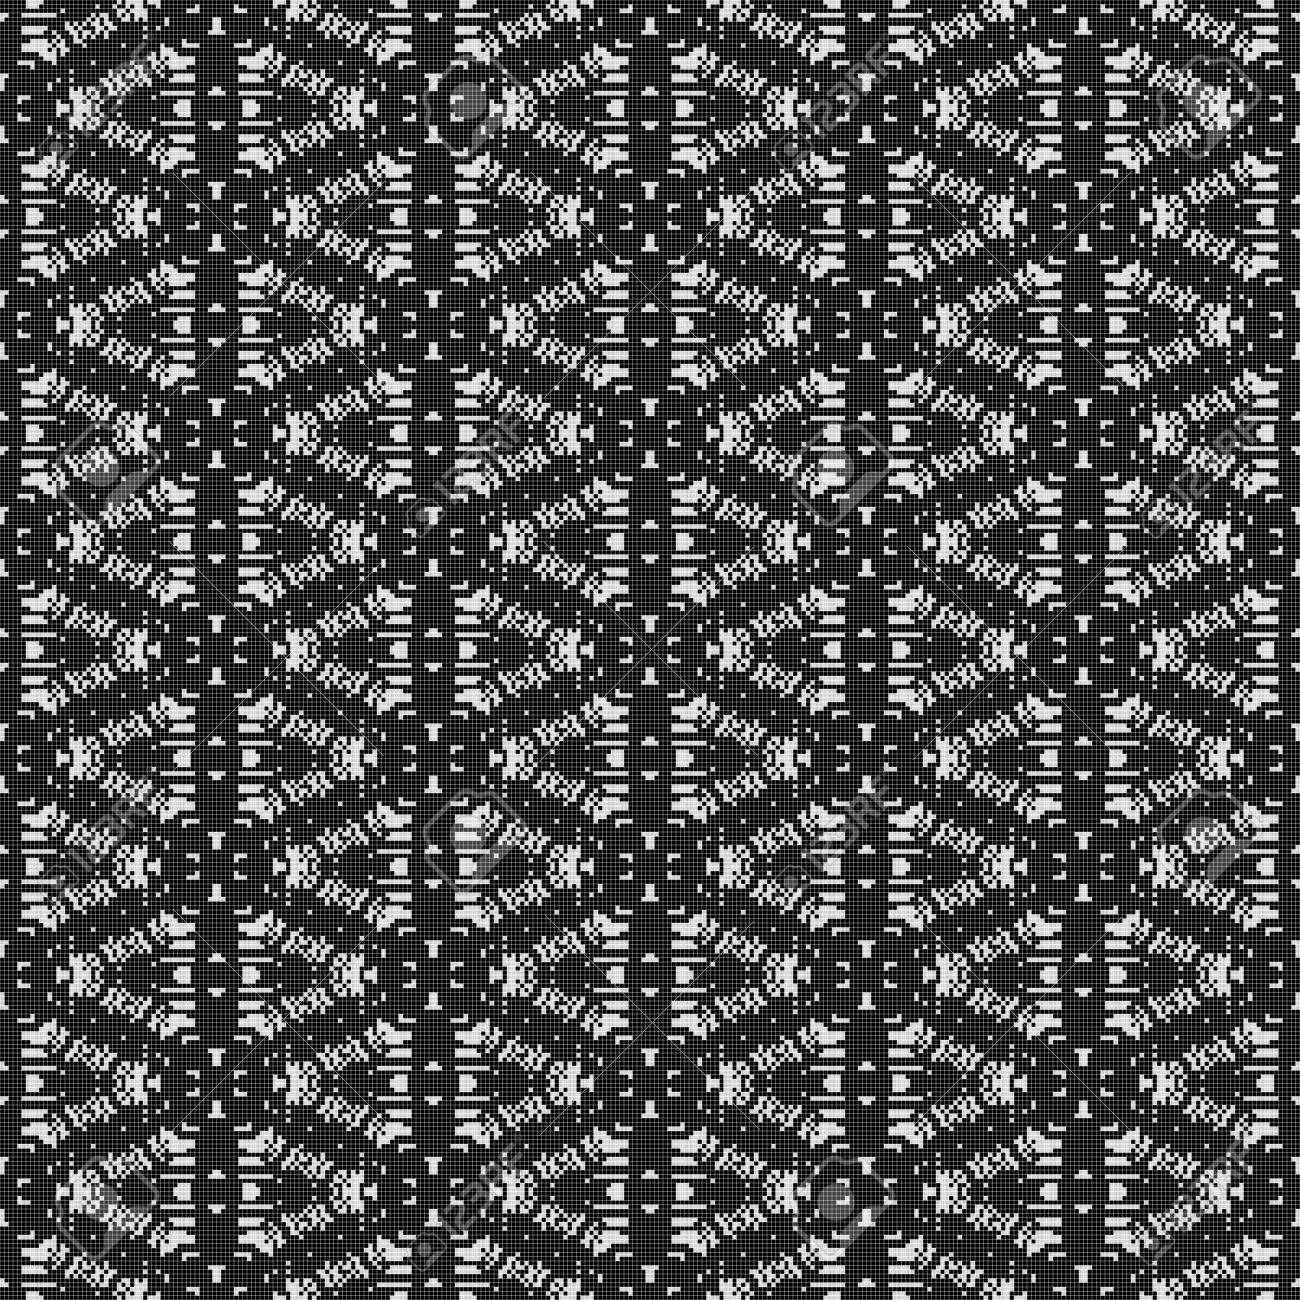 Black Curtain Texture black and white curtain lace texture or pattern stock photo